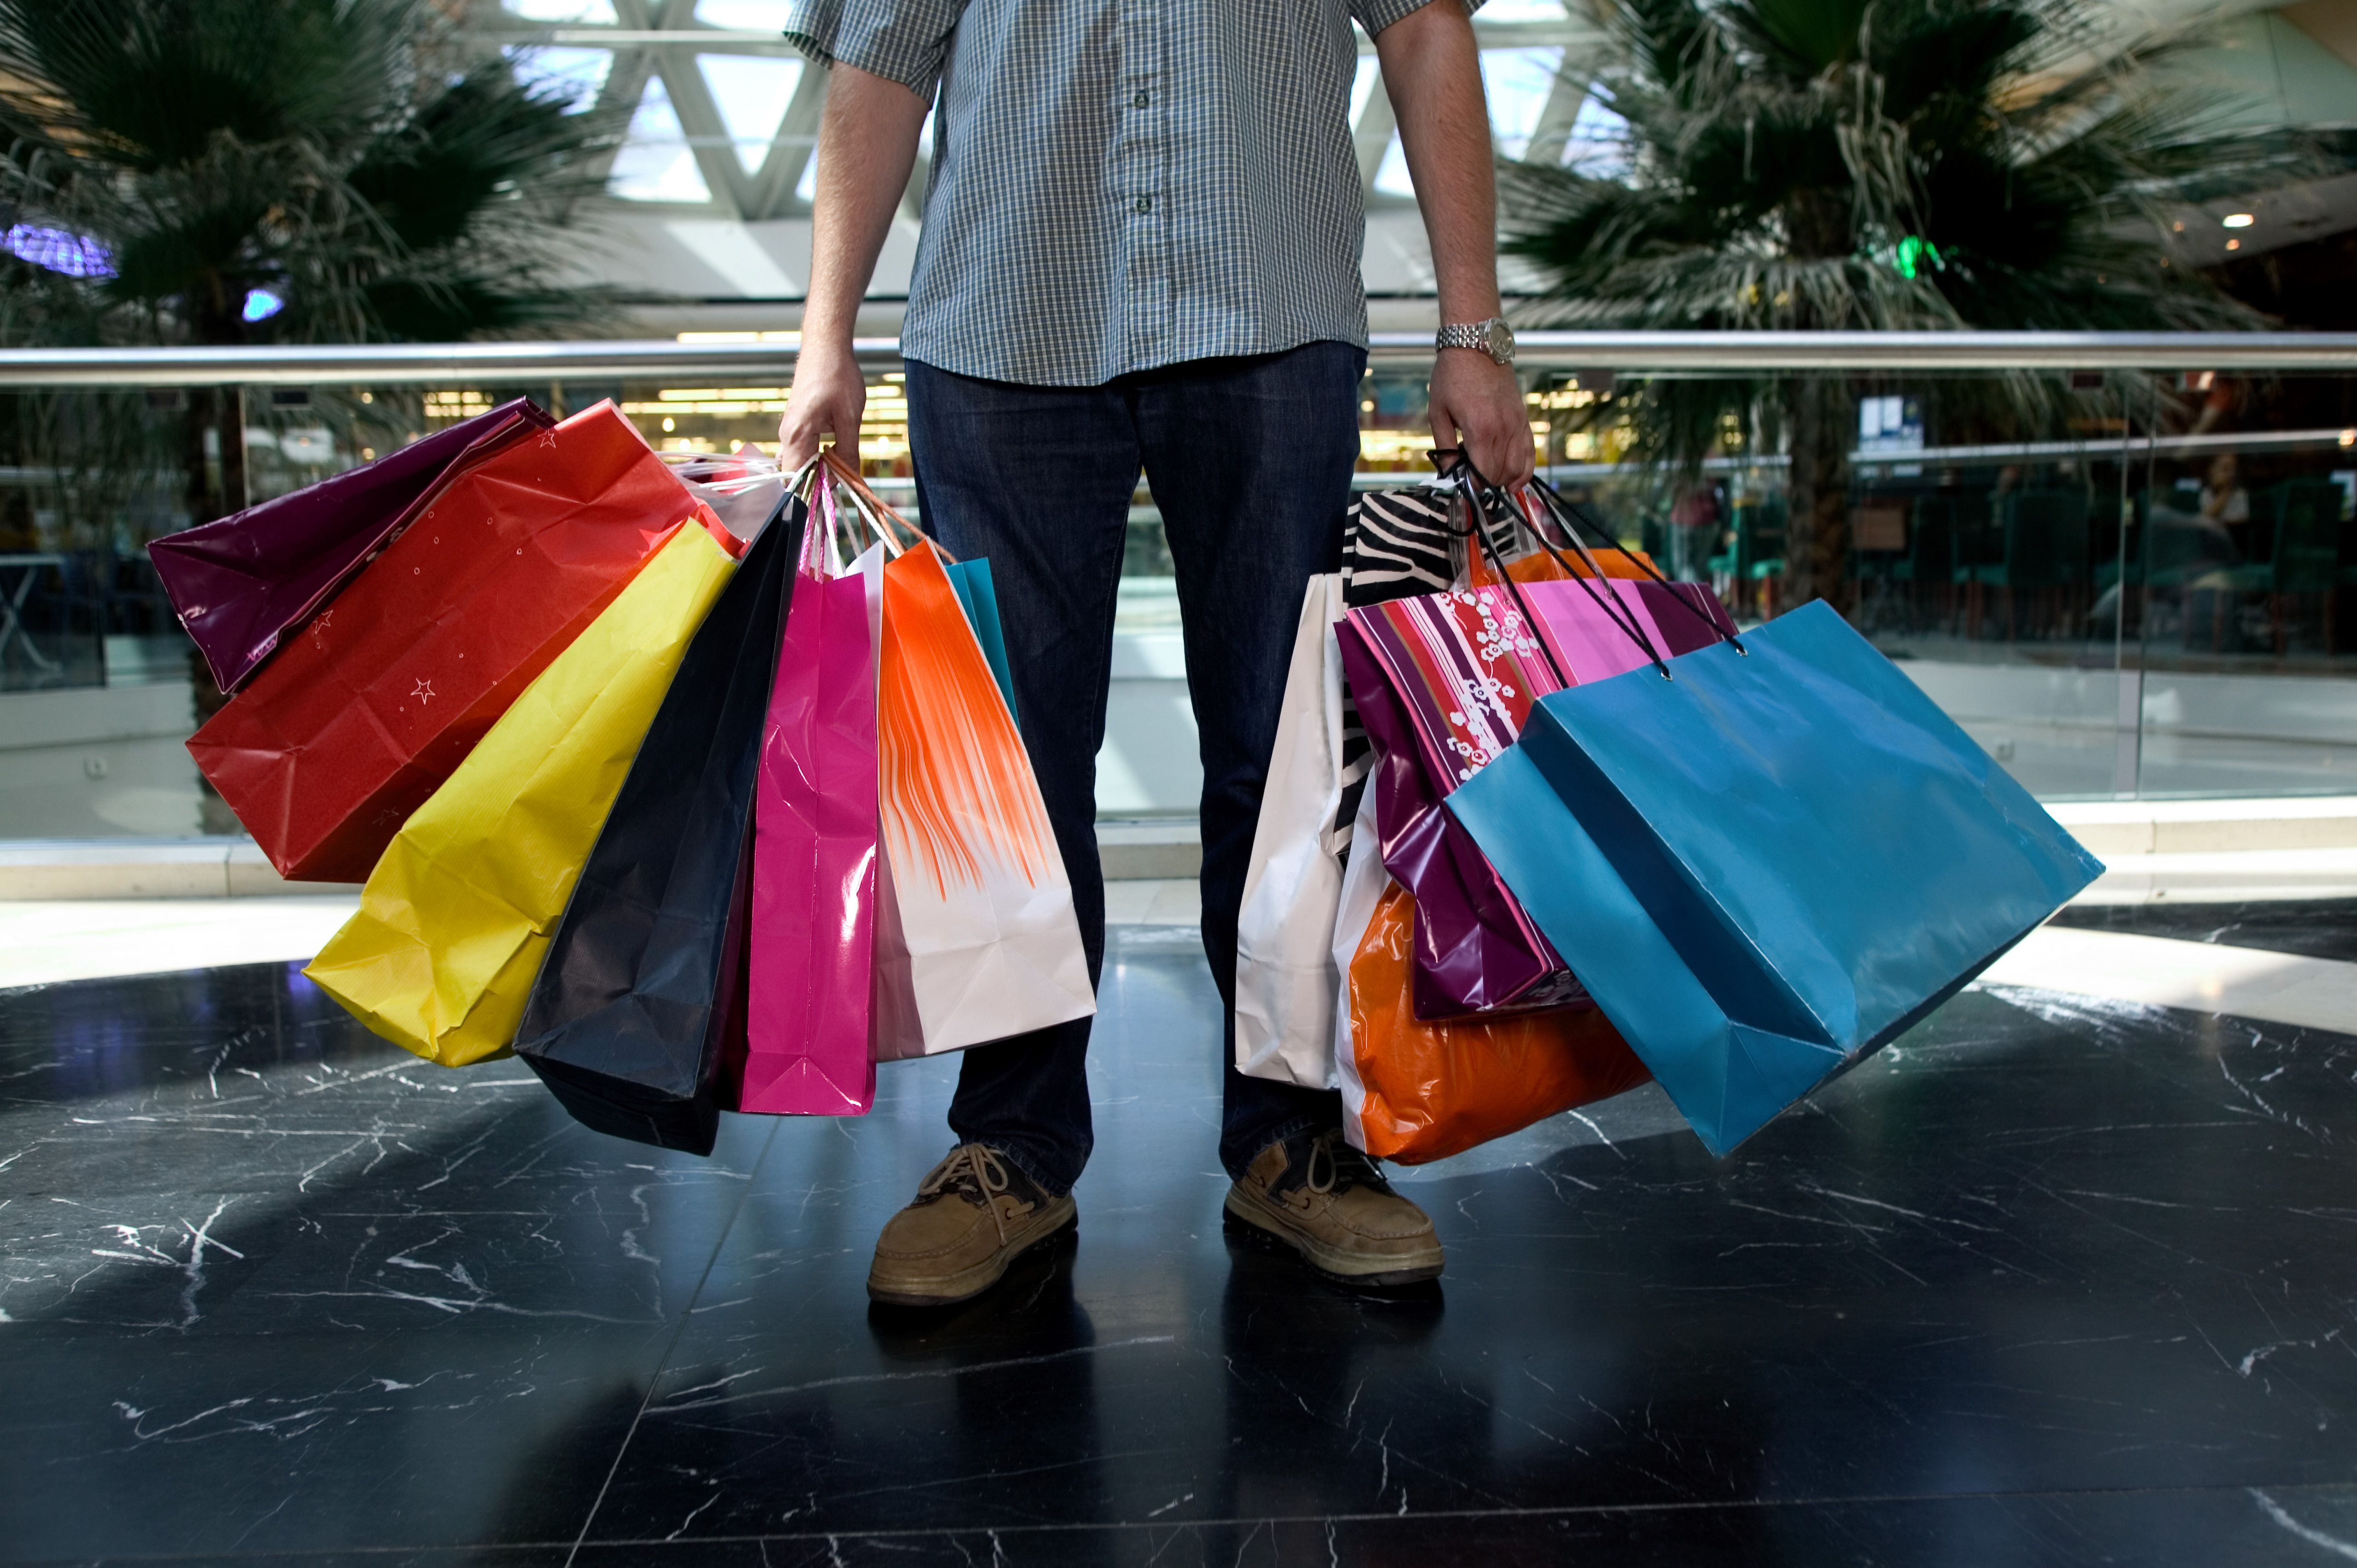 Lower body of a man holding shopping bags in mall